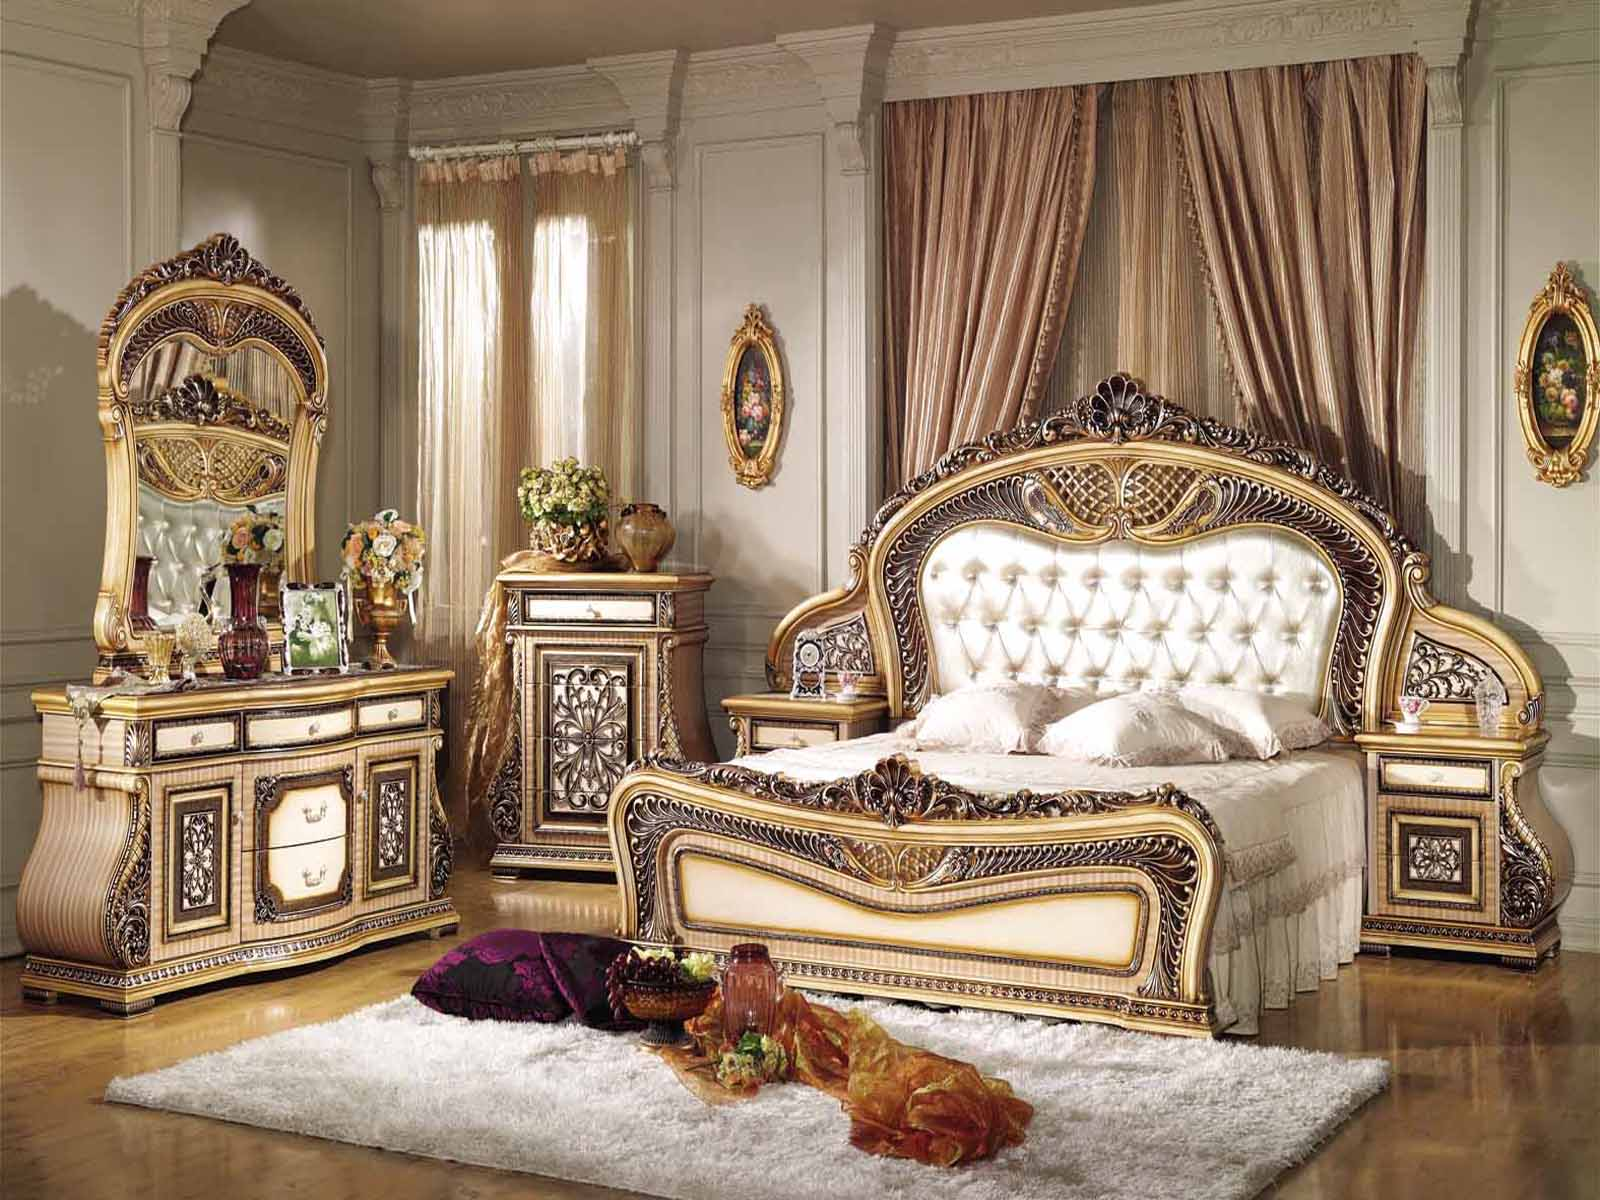 Room Design Ideas Pakistan